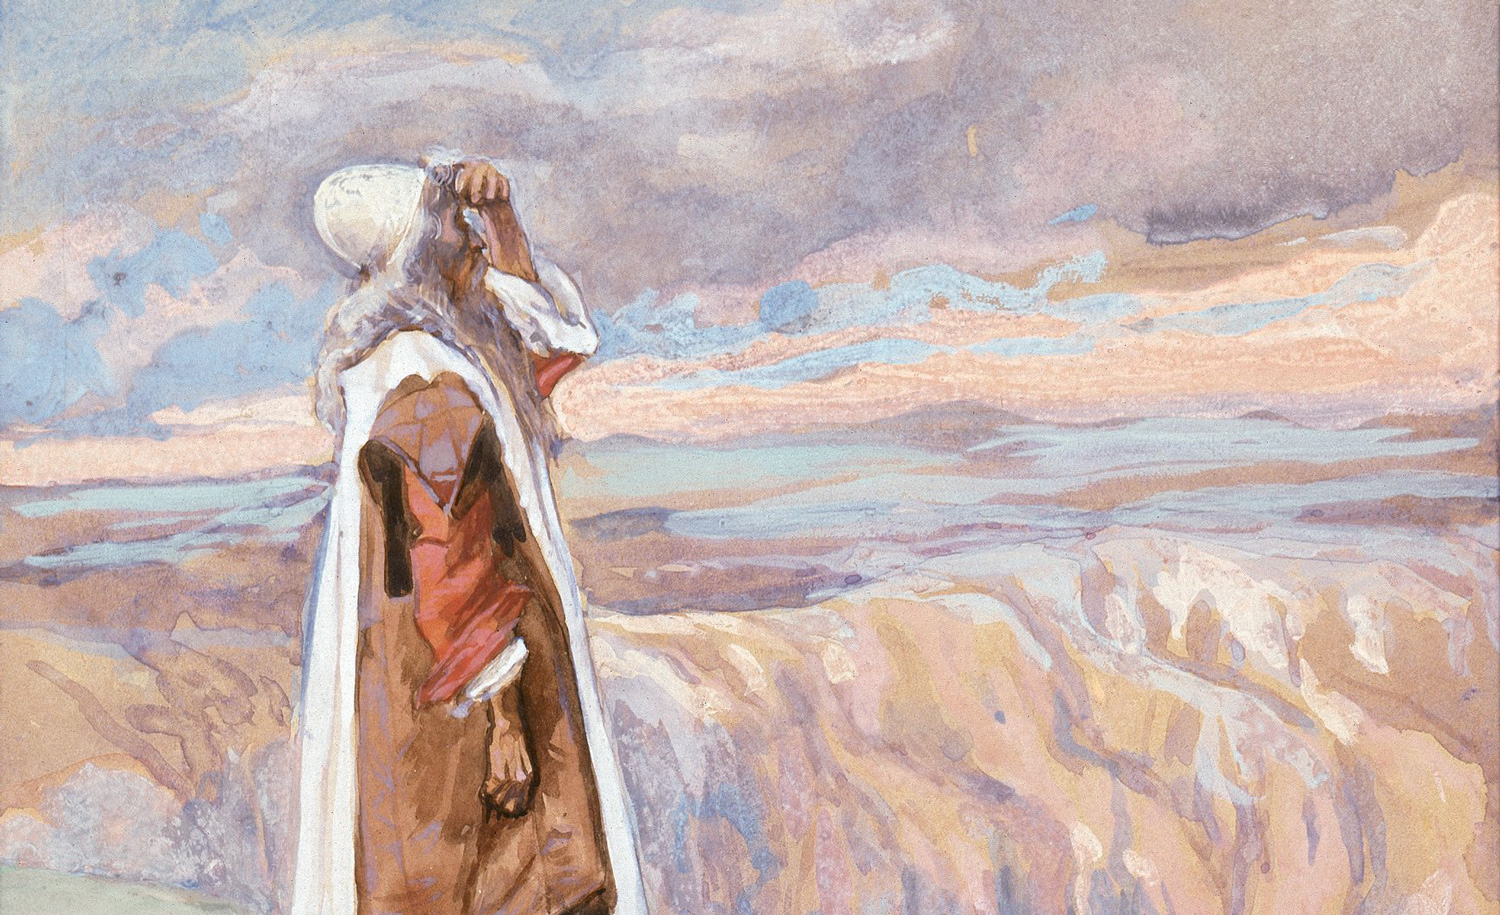 From Moses Sees the Promised Land From Afar,c. 1896-1902, by James Tissot. Jewish Museum.